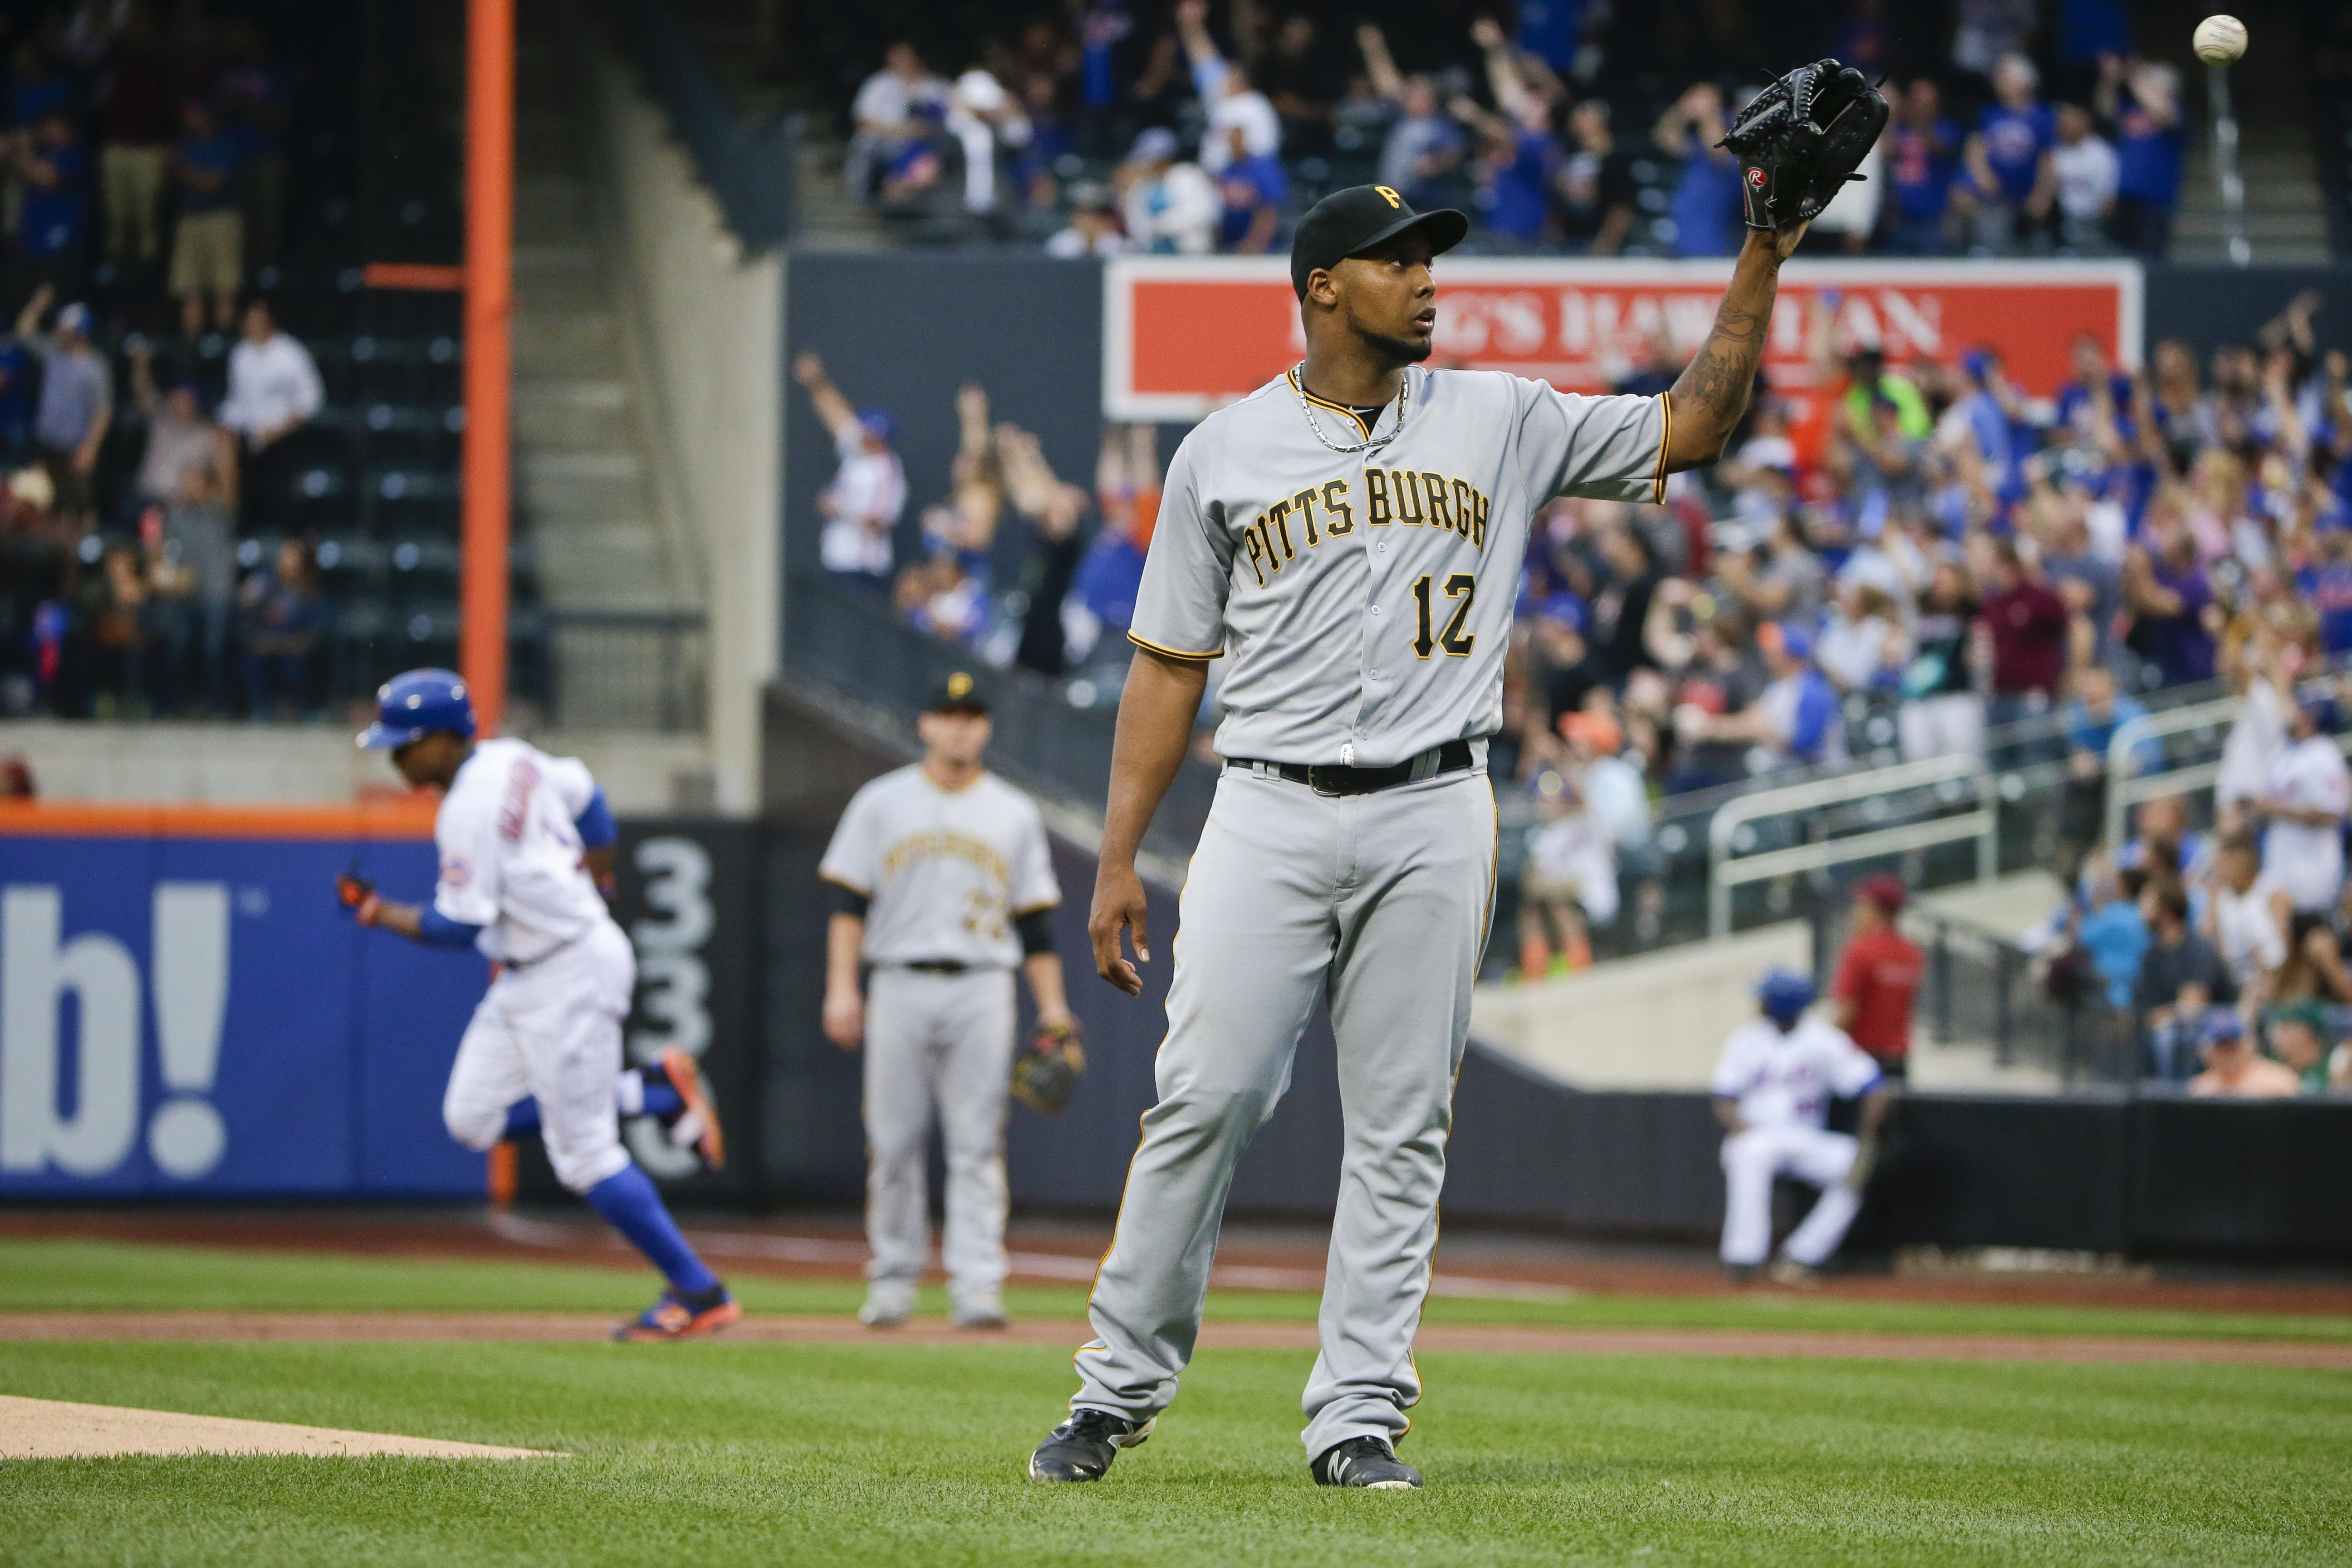 Pittsburgh Pirates starting pitcher Juan Nicasio (12) gets a new ball as New York Mets' Curtis Granderson runs the bases after hitting a home run during the first inning of a baseball game Thursday, June 16, 2016, in New York. (AP Photo/Frank Franklin II)